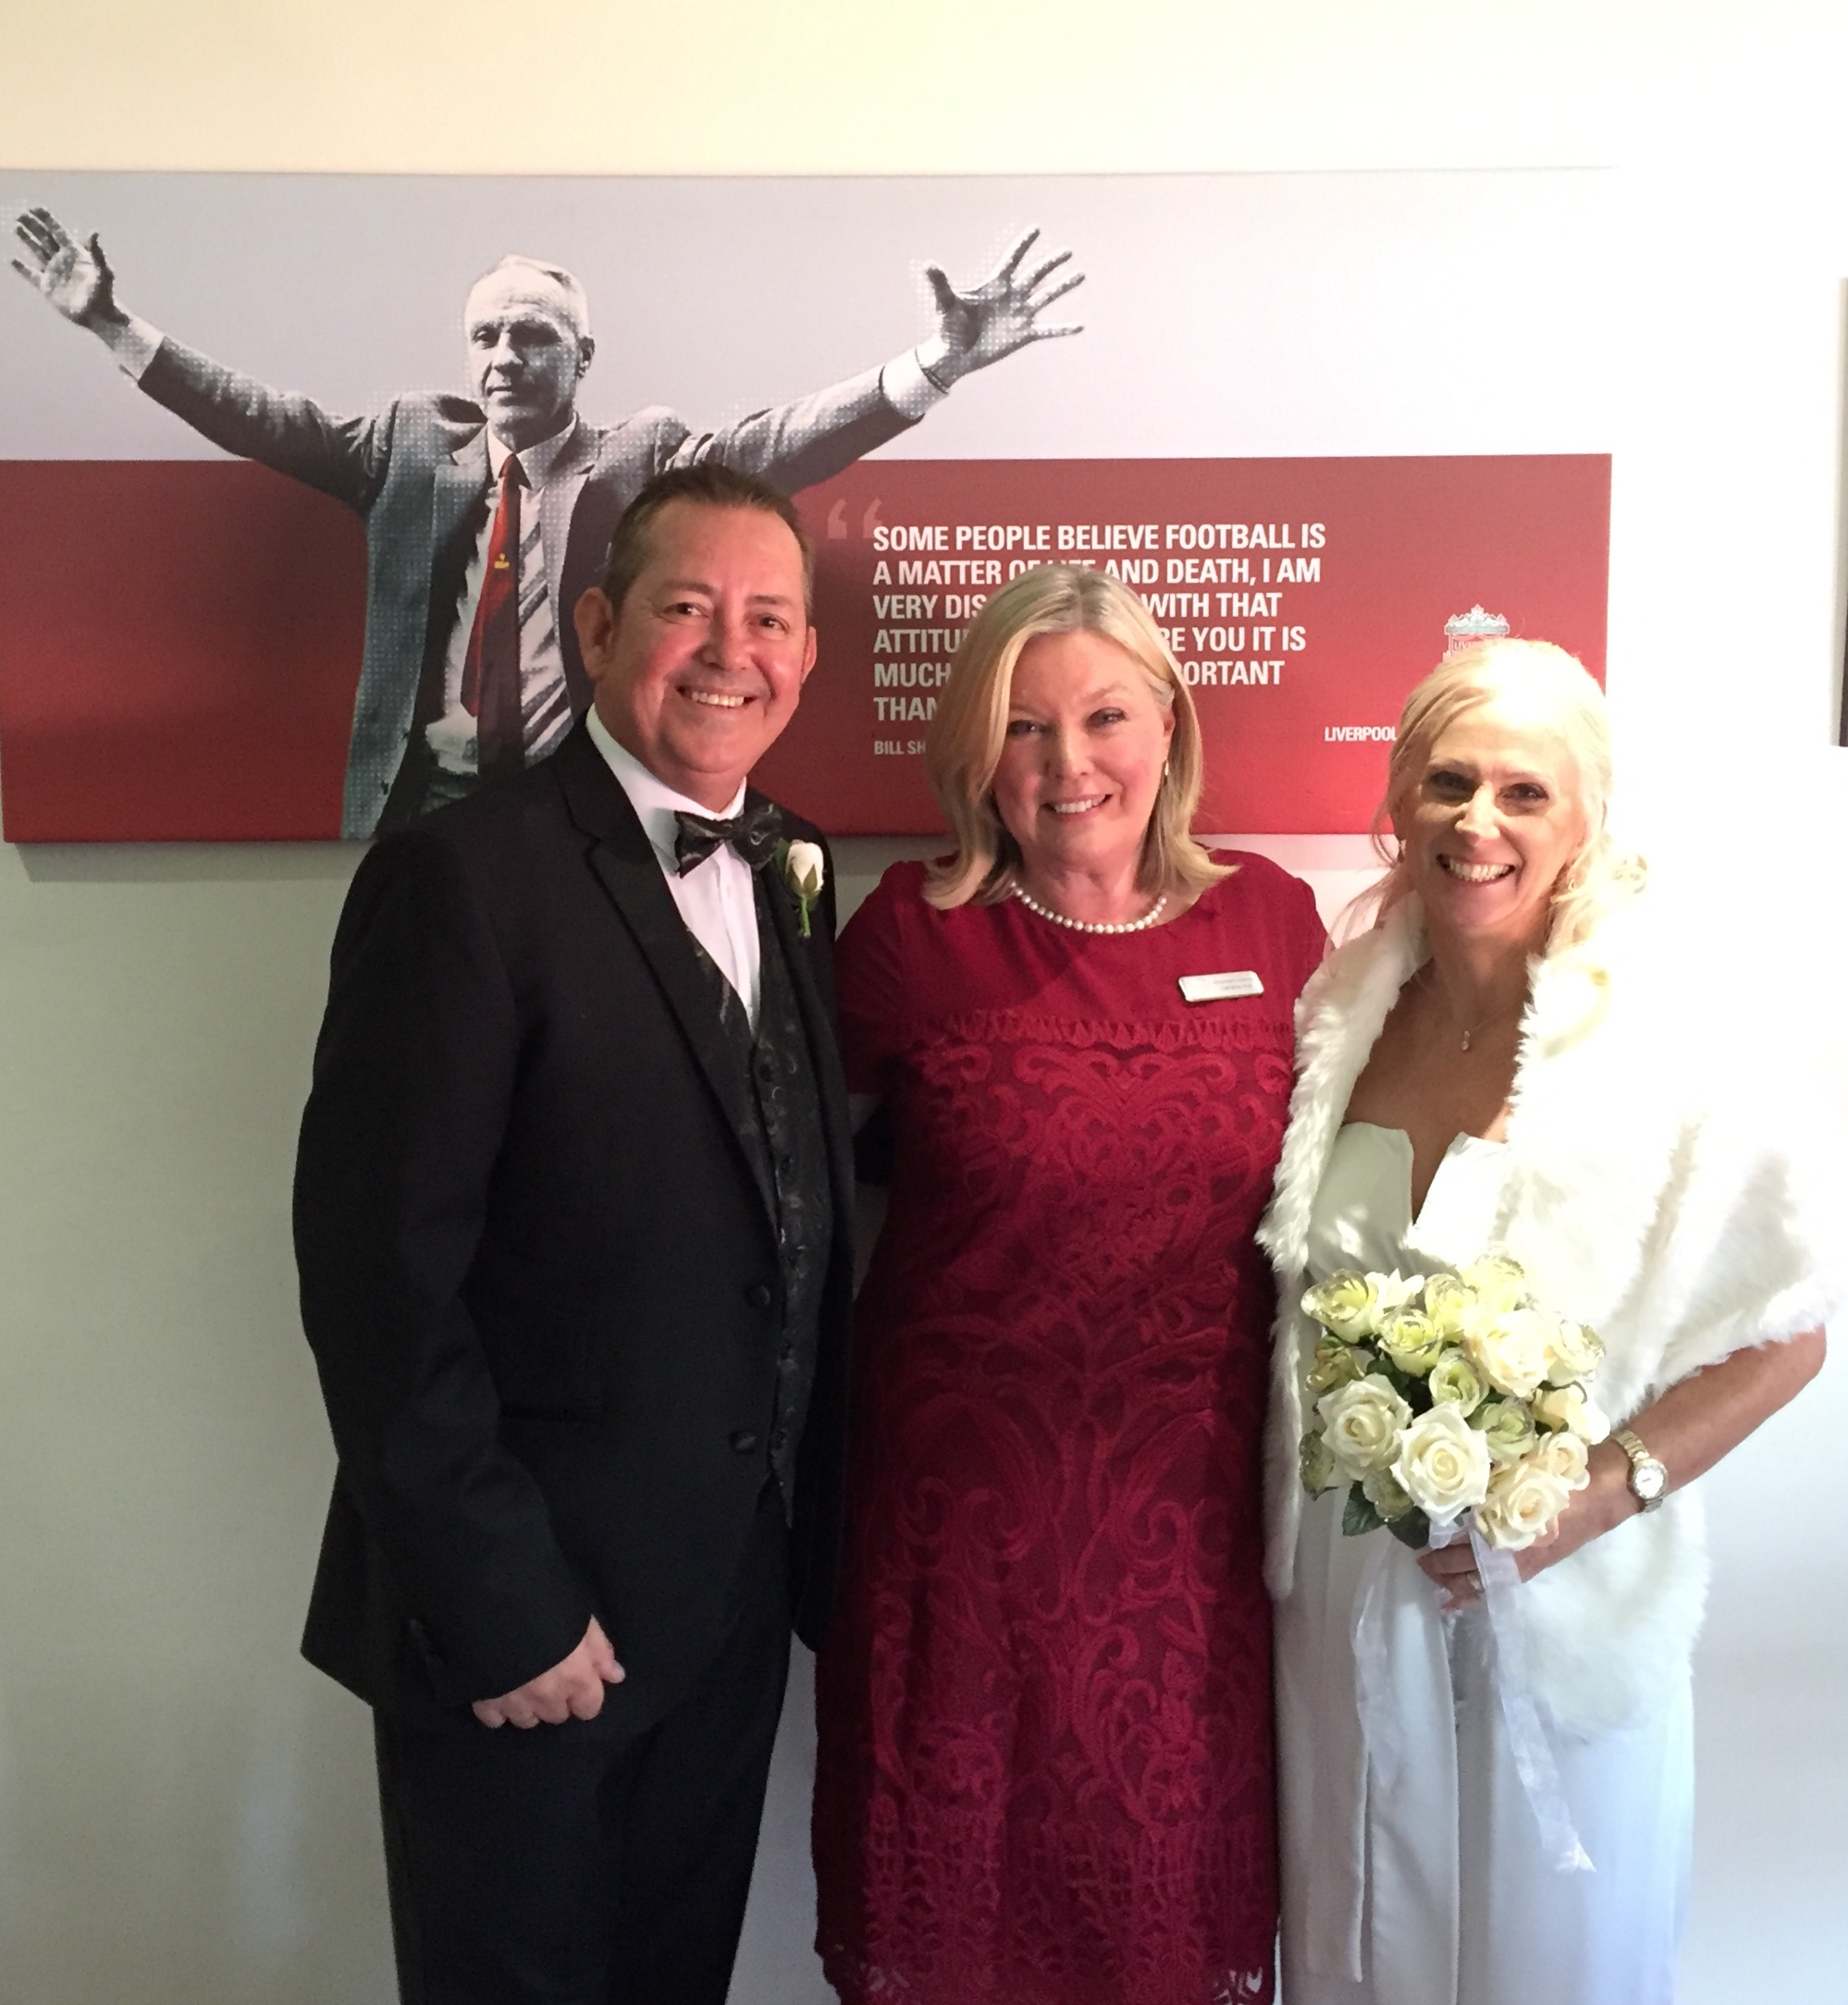 Liverpool Football Club Wedding Celebrant, Lorraine Hull